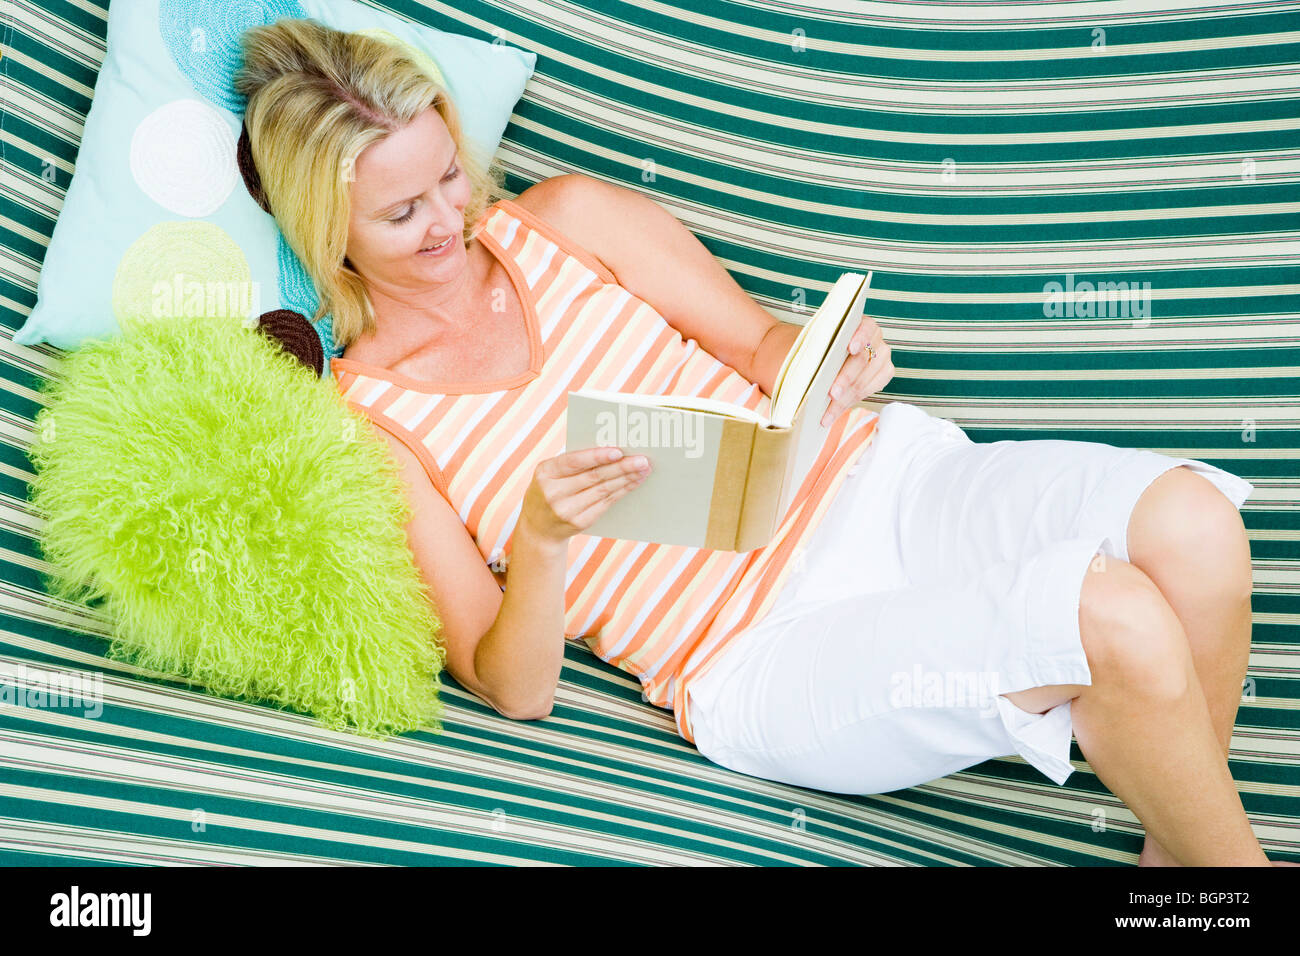 High angle view of a mid adult woman lying in a hammock and reading a book - Stock Image